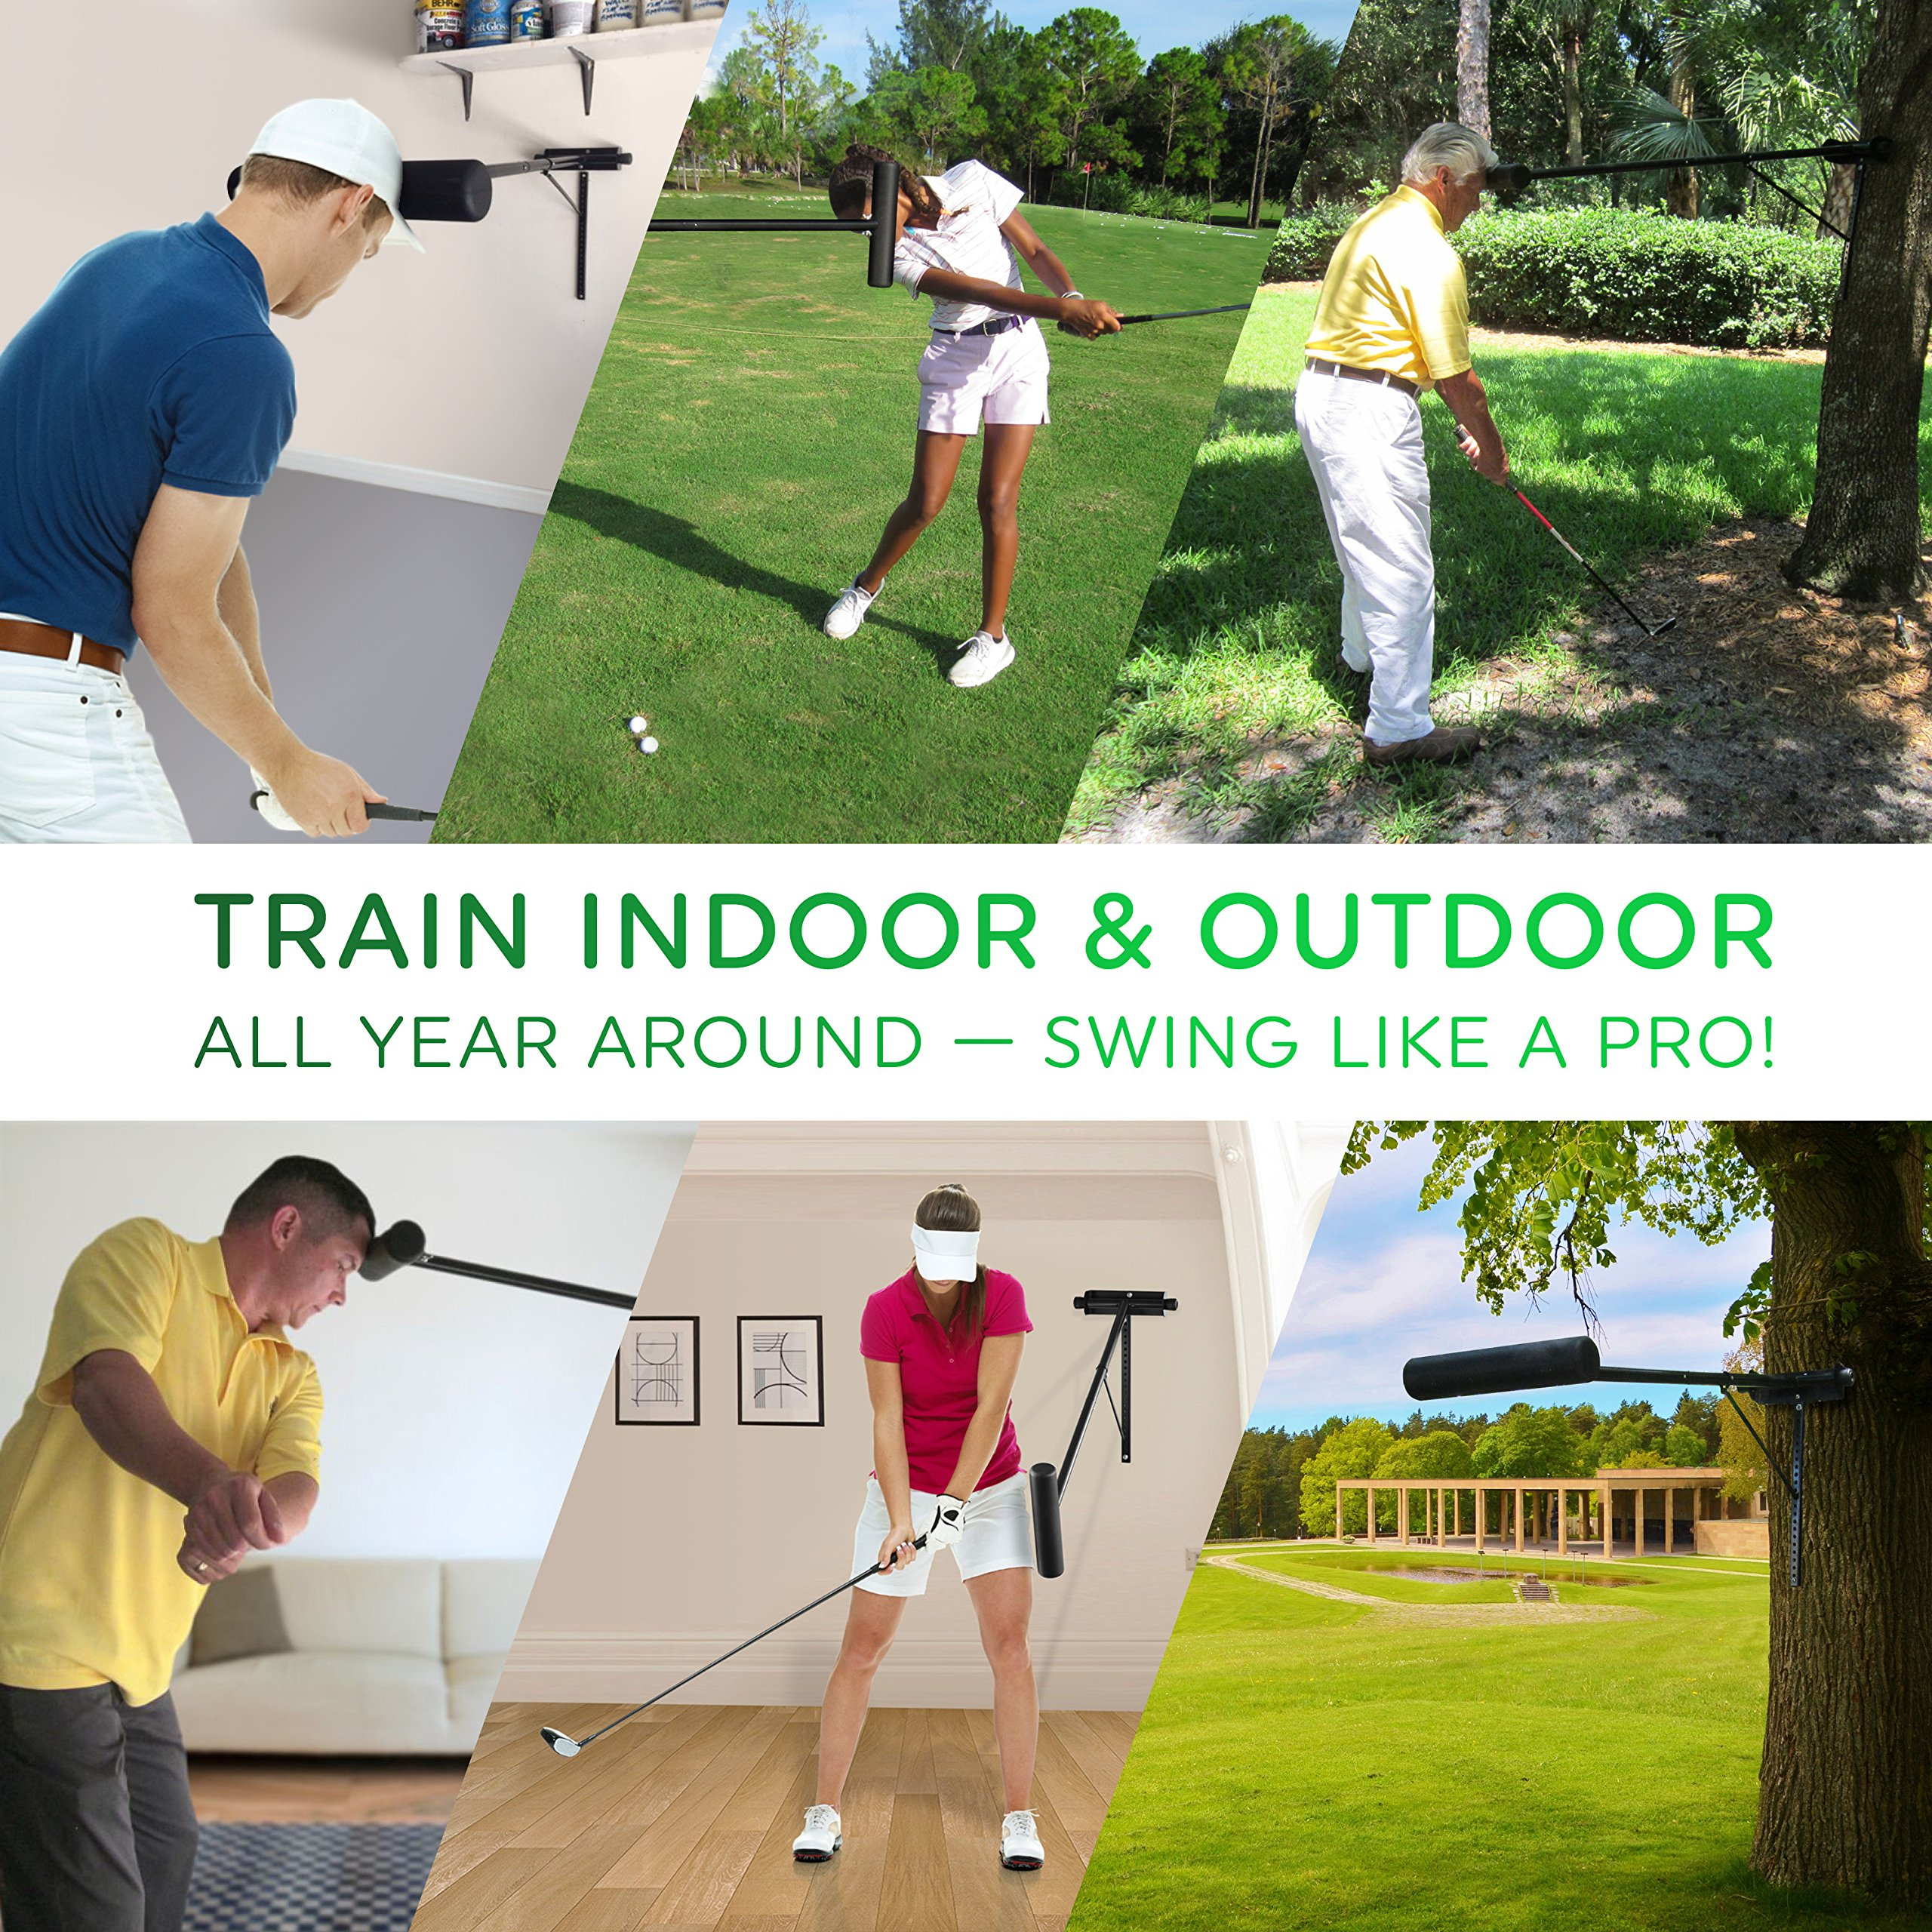 Golf Swing Trainer PRO-HEAD - Wall or Tree Golf Training Aid Equipment for All Golfers - Posture Correcting Tool - Fix and Keep a Steady Head, Maintain Spine Angle - Practice Indoor & Outdoor by PRO-HEAD (Image #6)